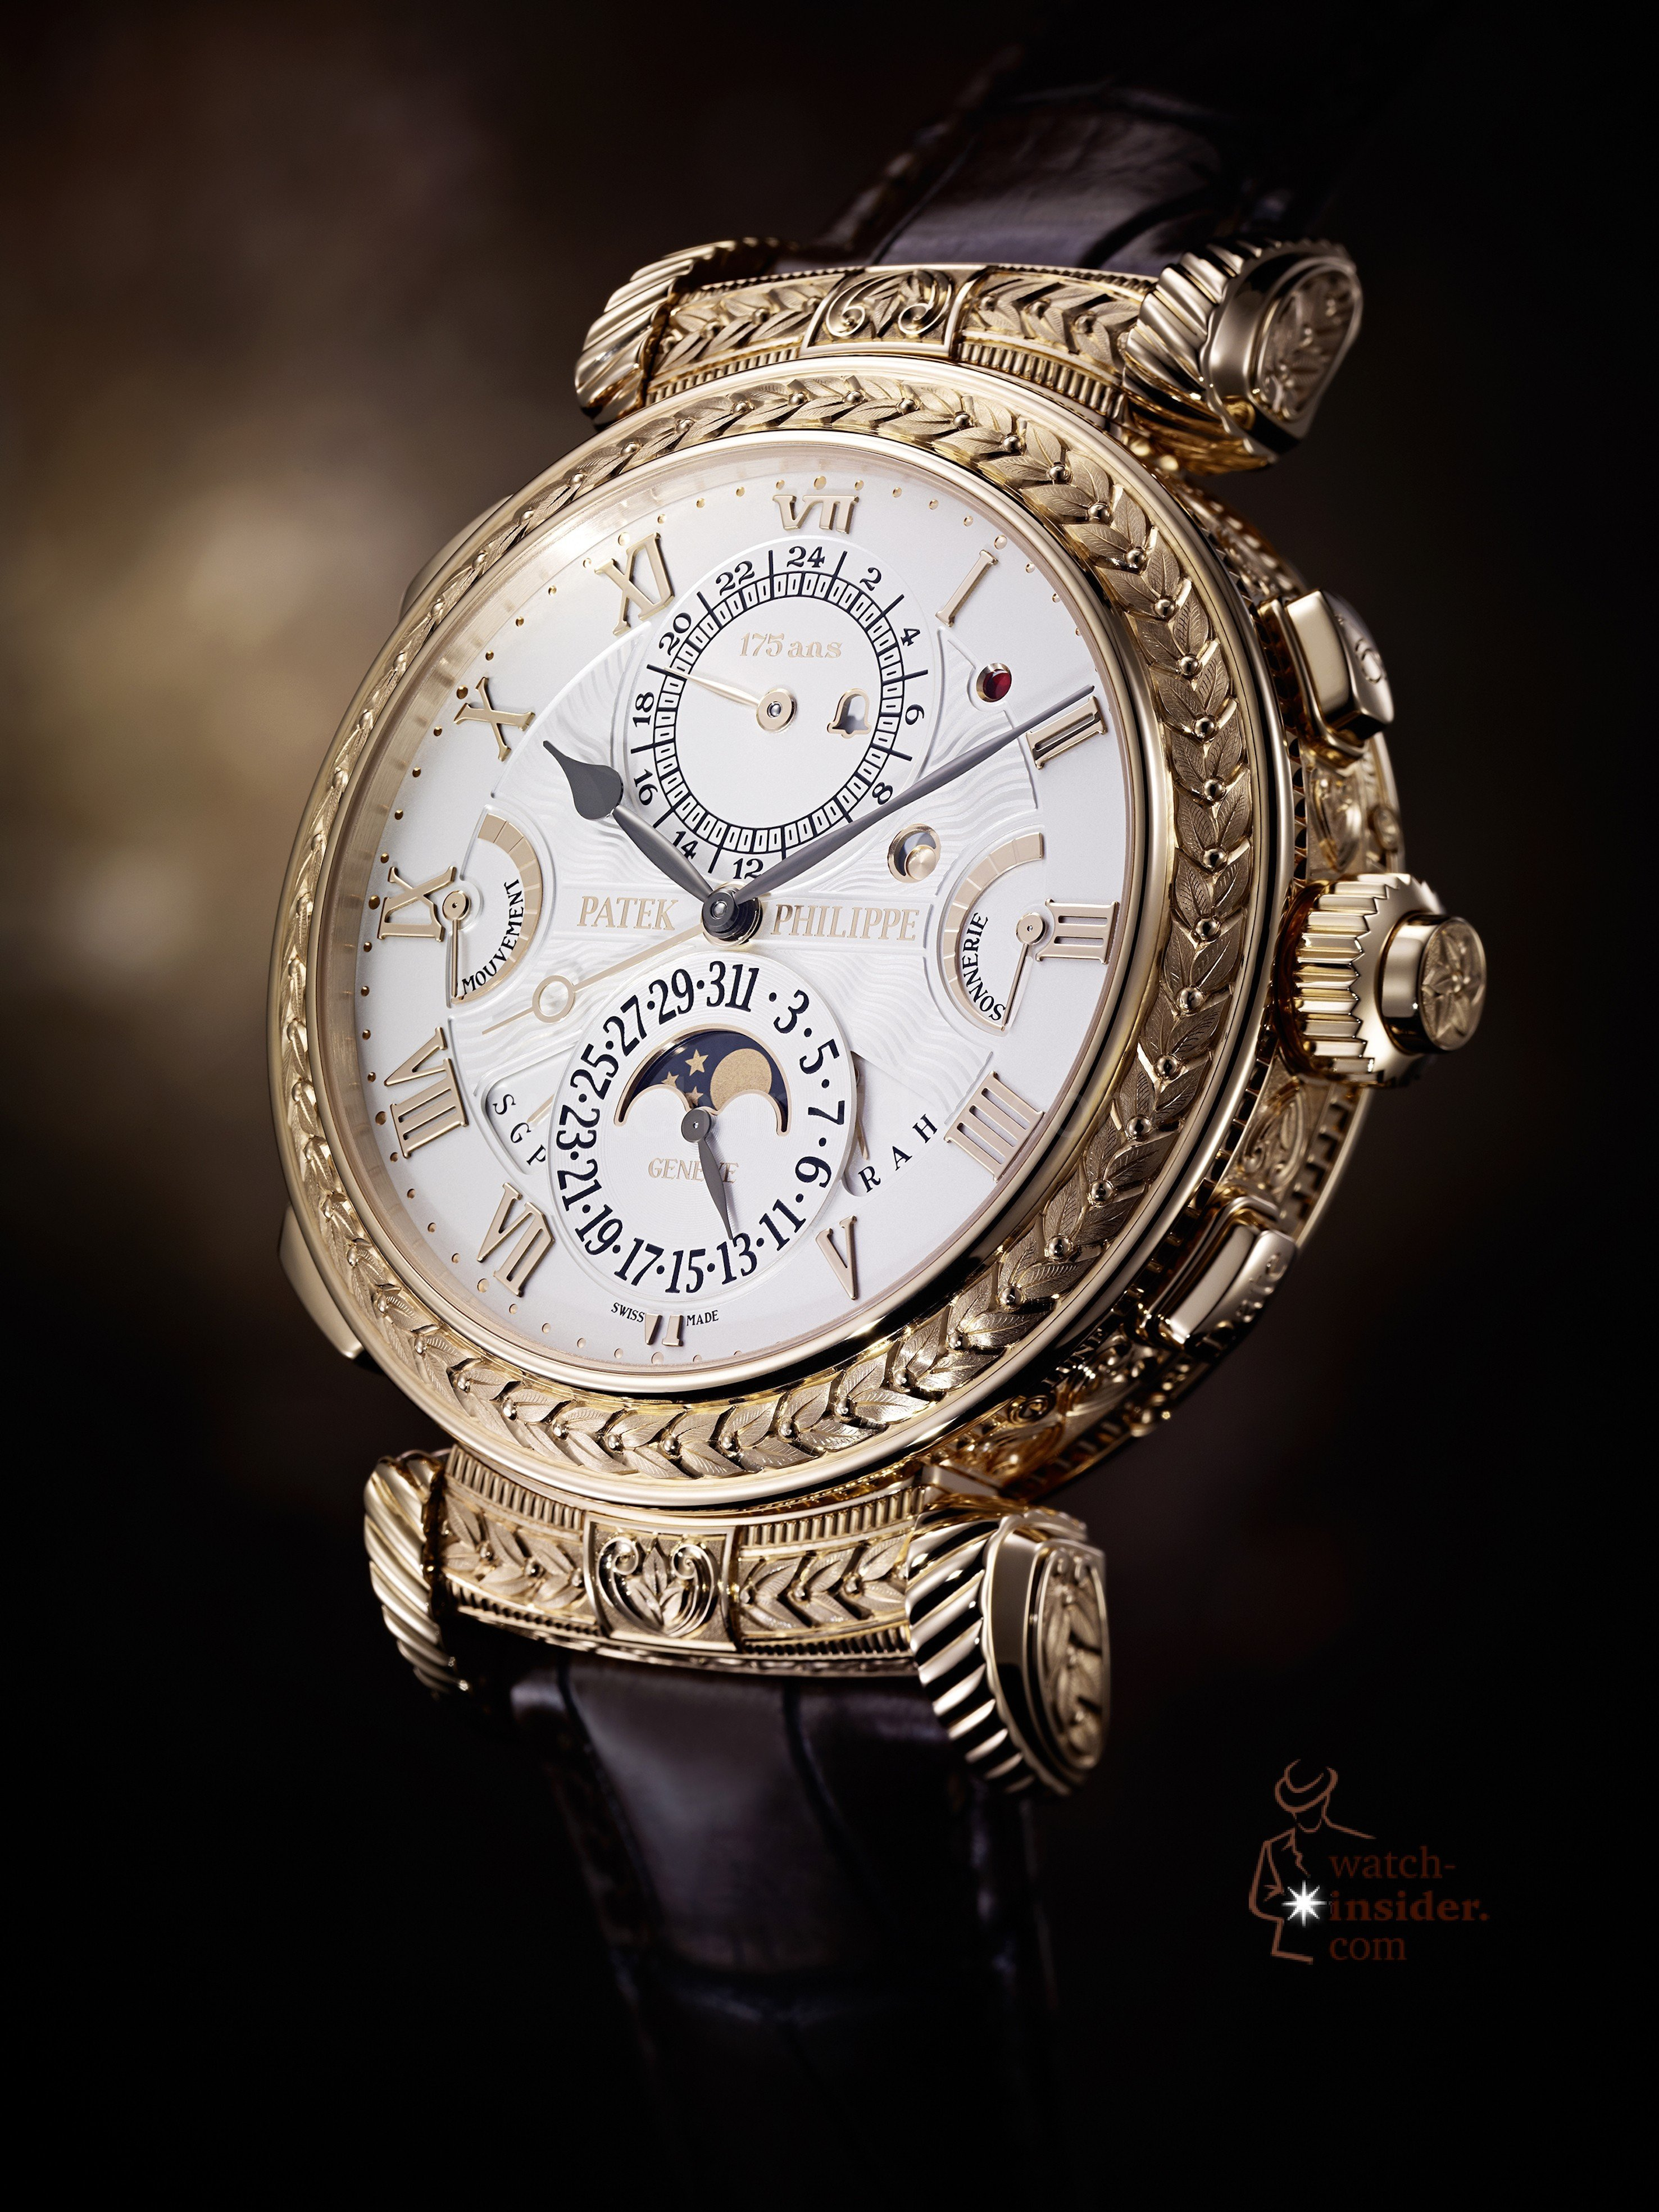 watch Patek Philippe Wallpapers HD Desktop and Mobile Backgrounds 2953x3937